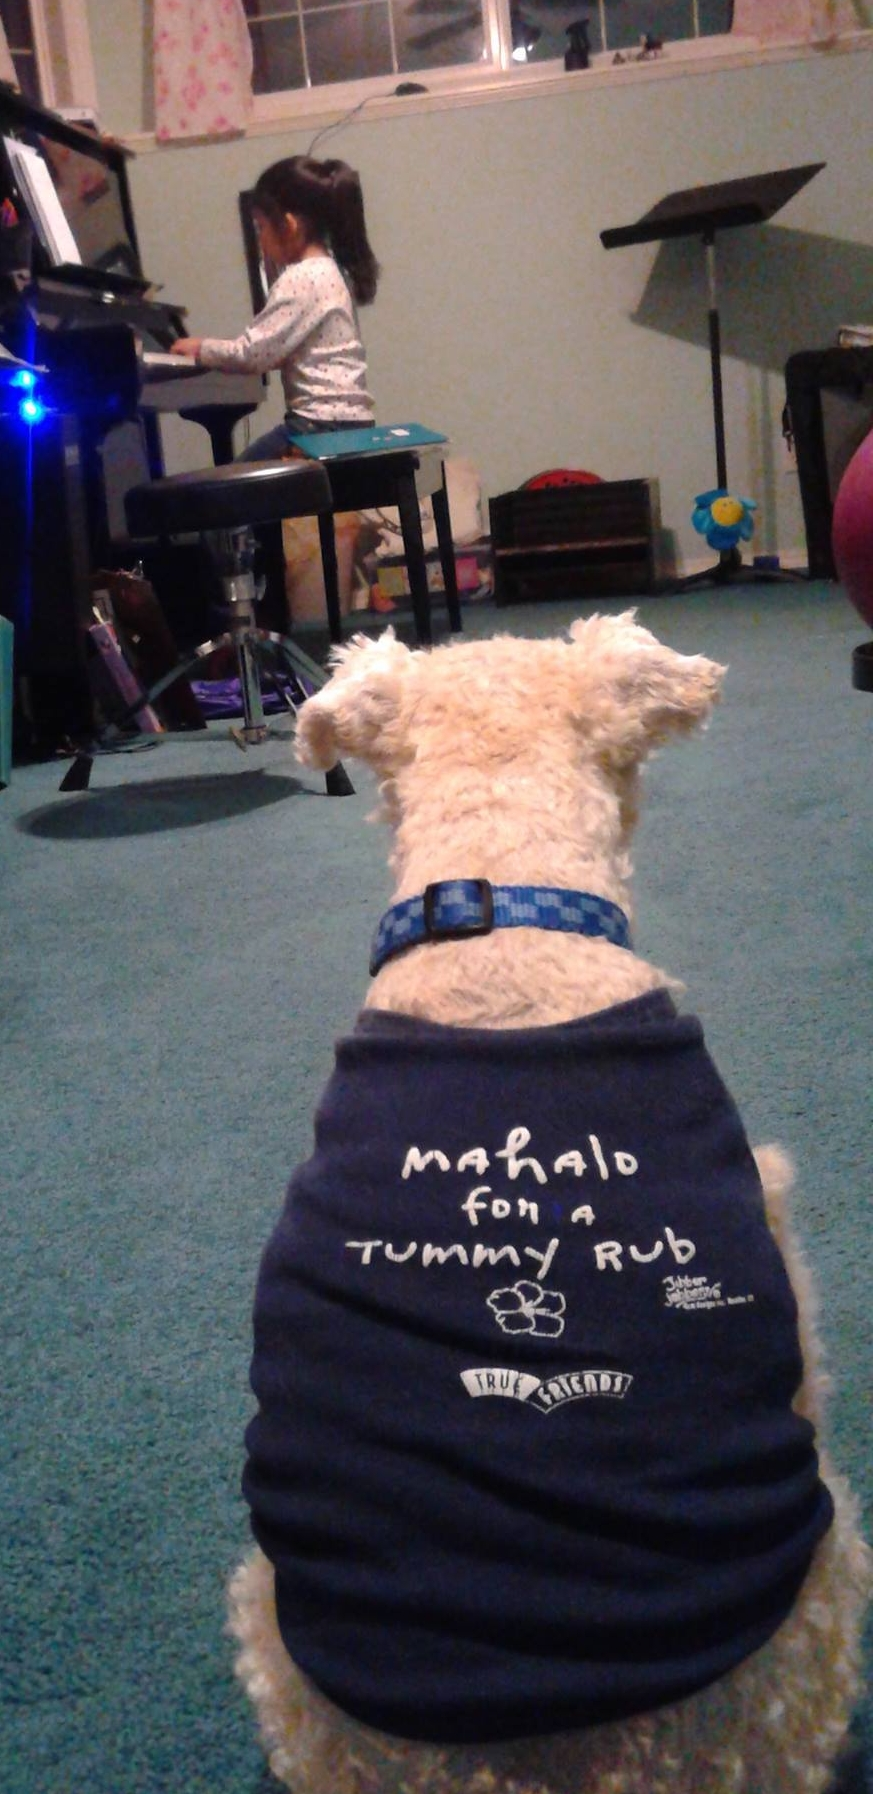 Maestro loved a good performance just as much as the next canine studio assistant.